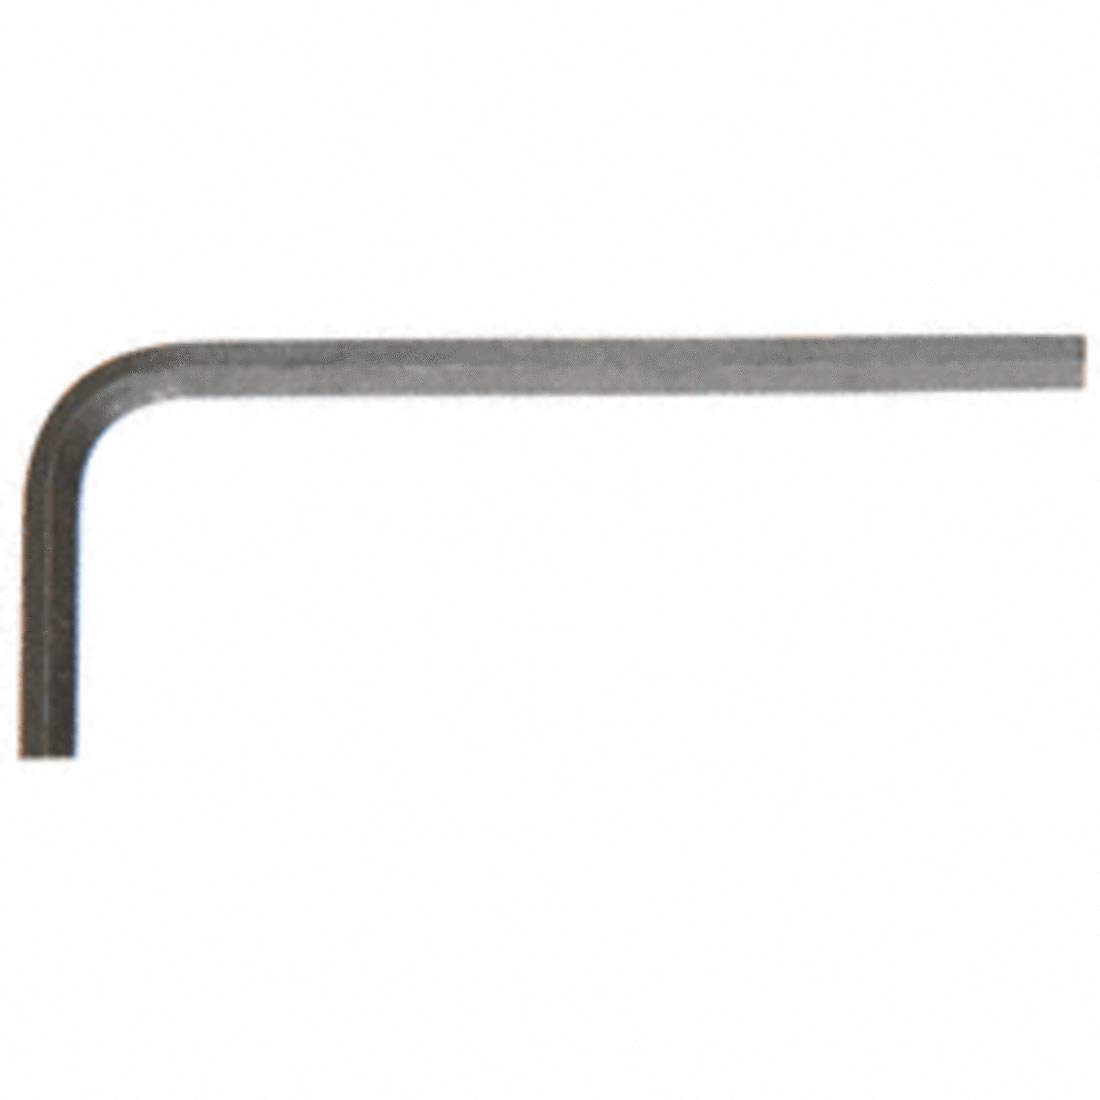 CRL 3mm Allen Wrench - 3MM by CRL (Image #1)